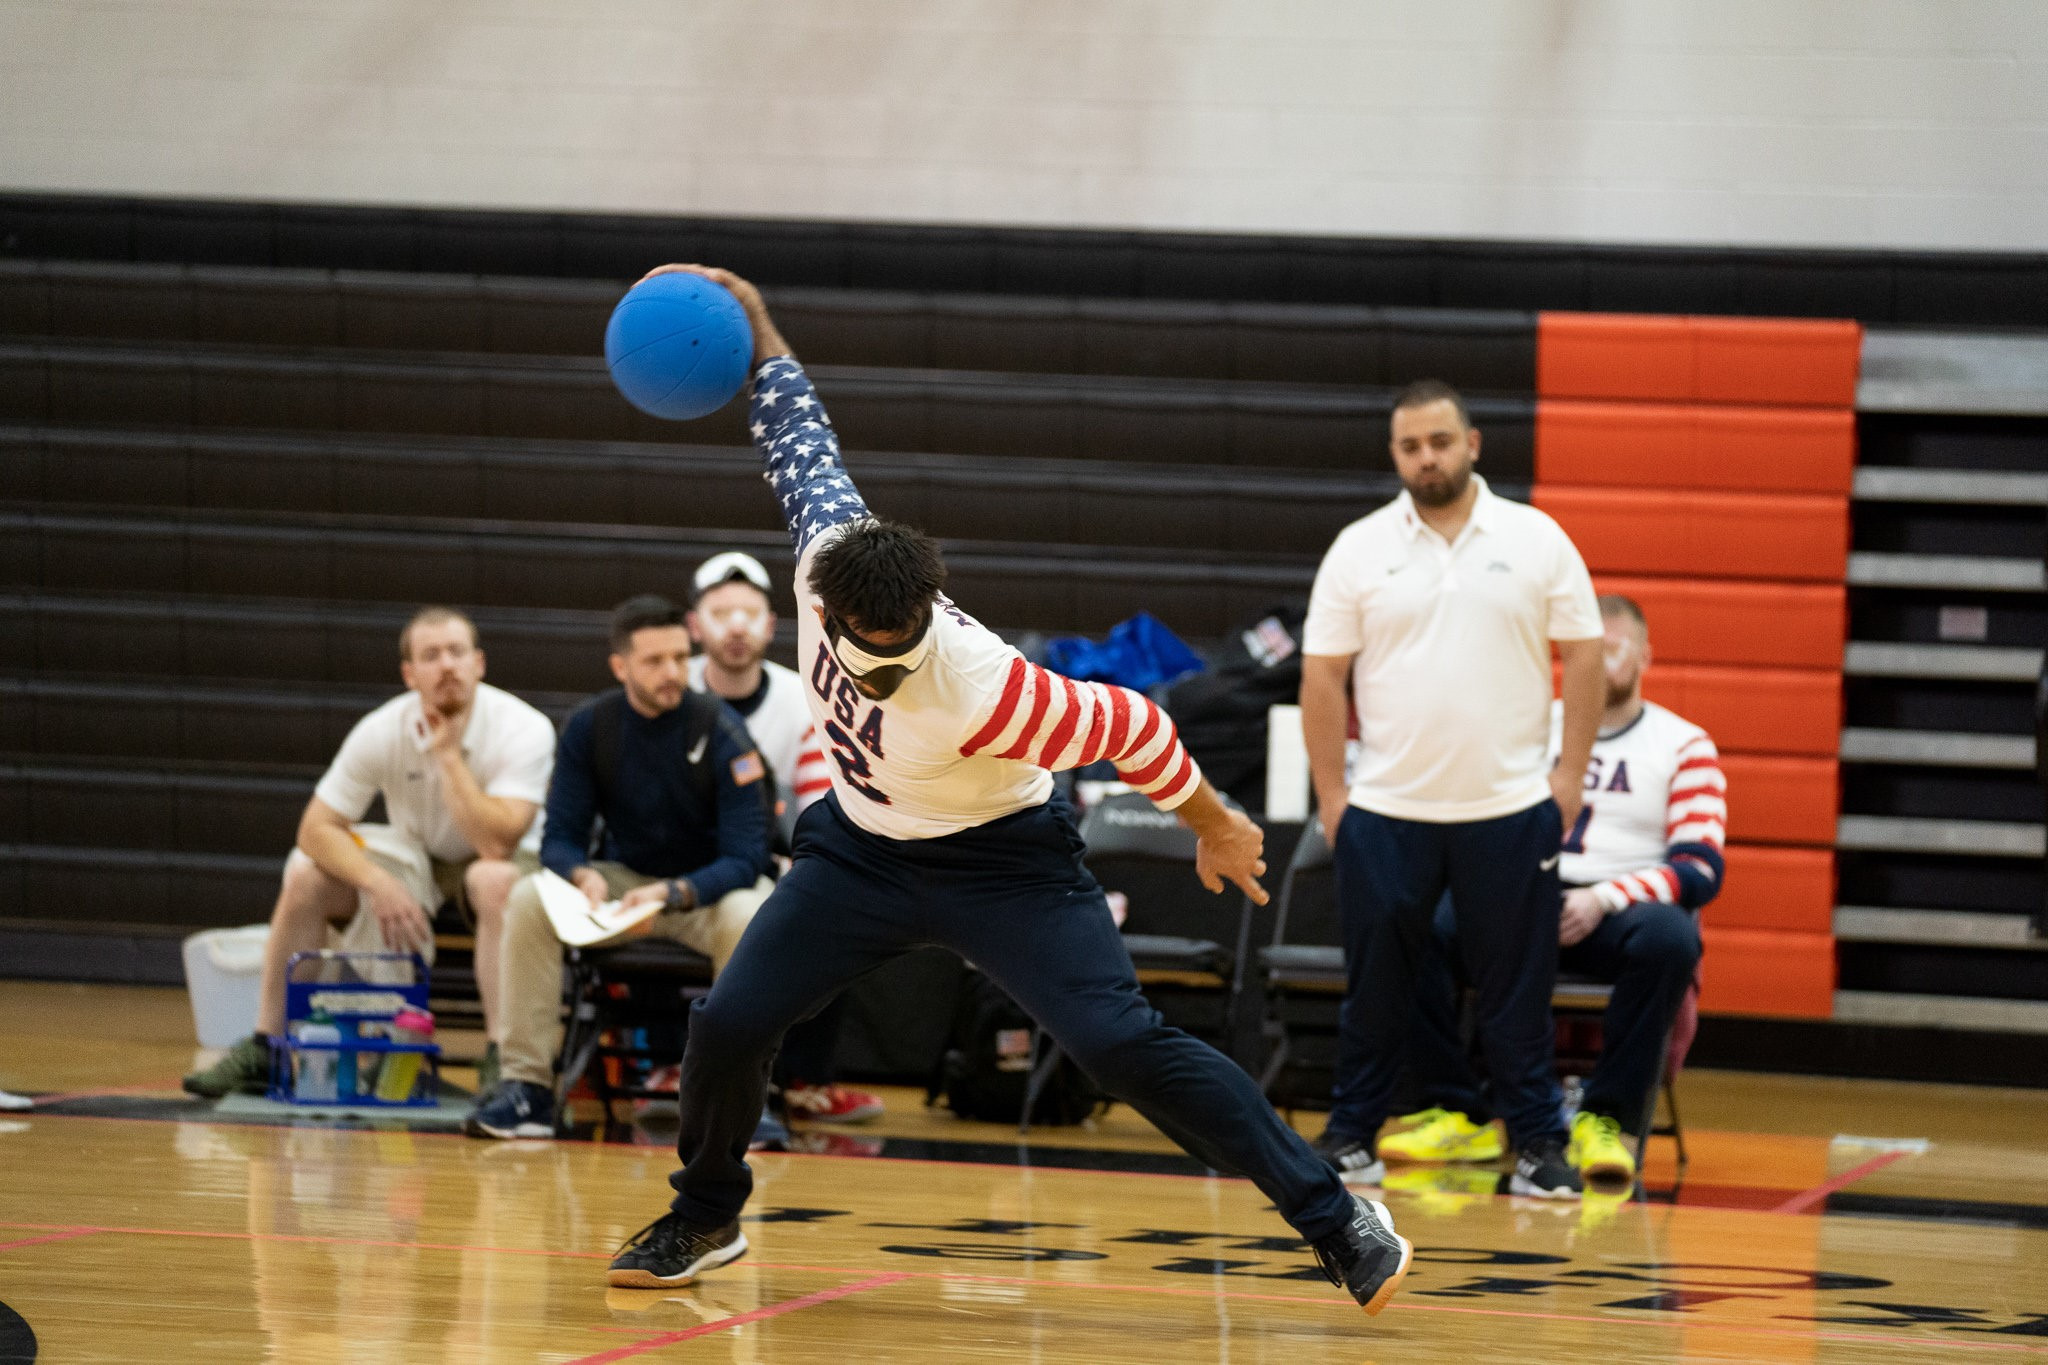 United States men bounce back with two wins at IBSA Goalball International Qualifier for Tokyo 2020